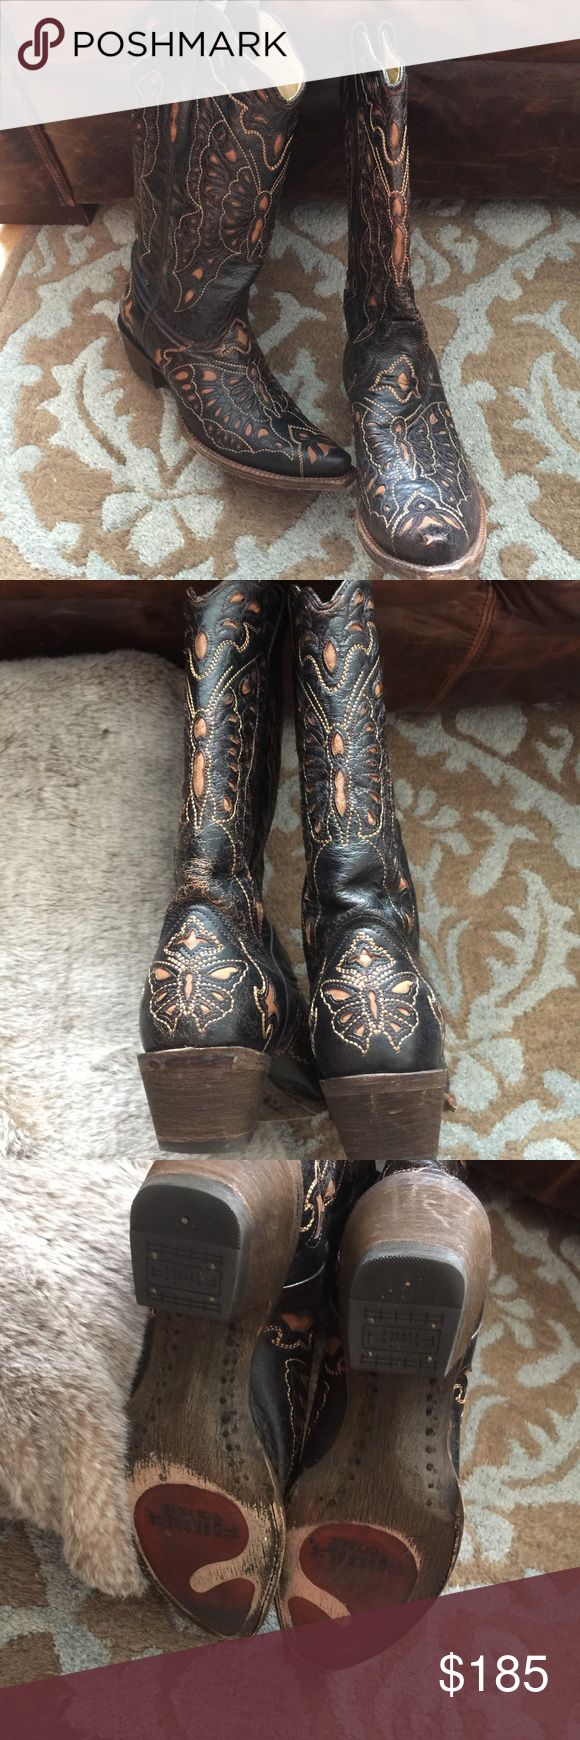 ✨Final Price✨Corral Vintage Boots Ladies Size 10 M Authentic Corral Vintage Boots. Ladies Size 10 M. Beautiful Condition. Gorgeous Detail. Worn 2x. TTS. Very Comfortable. Listing for a Friend. She Normally Wears B Width. No Box. Will pack nicely for shipping. Corral Vintage  Shoes